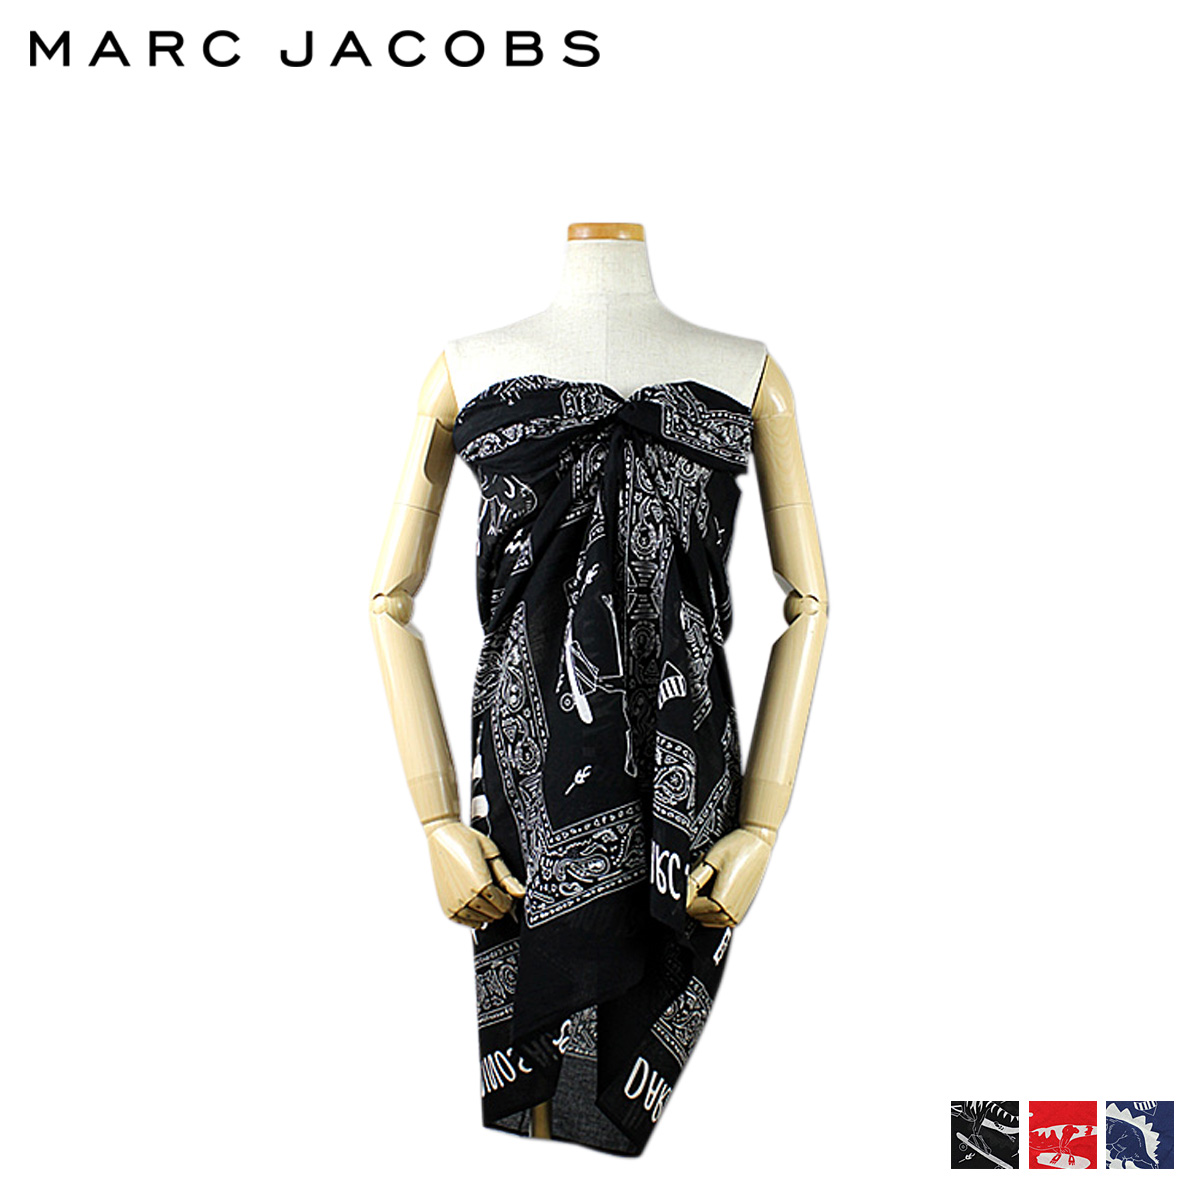 Mark by Mark Jacobs MARC BY MARC JACOBS pareo 3 color bandanna blanket women's [regular]